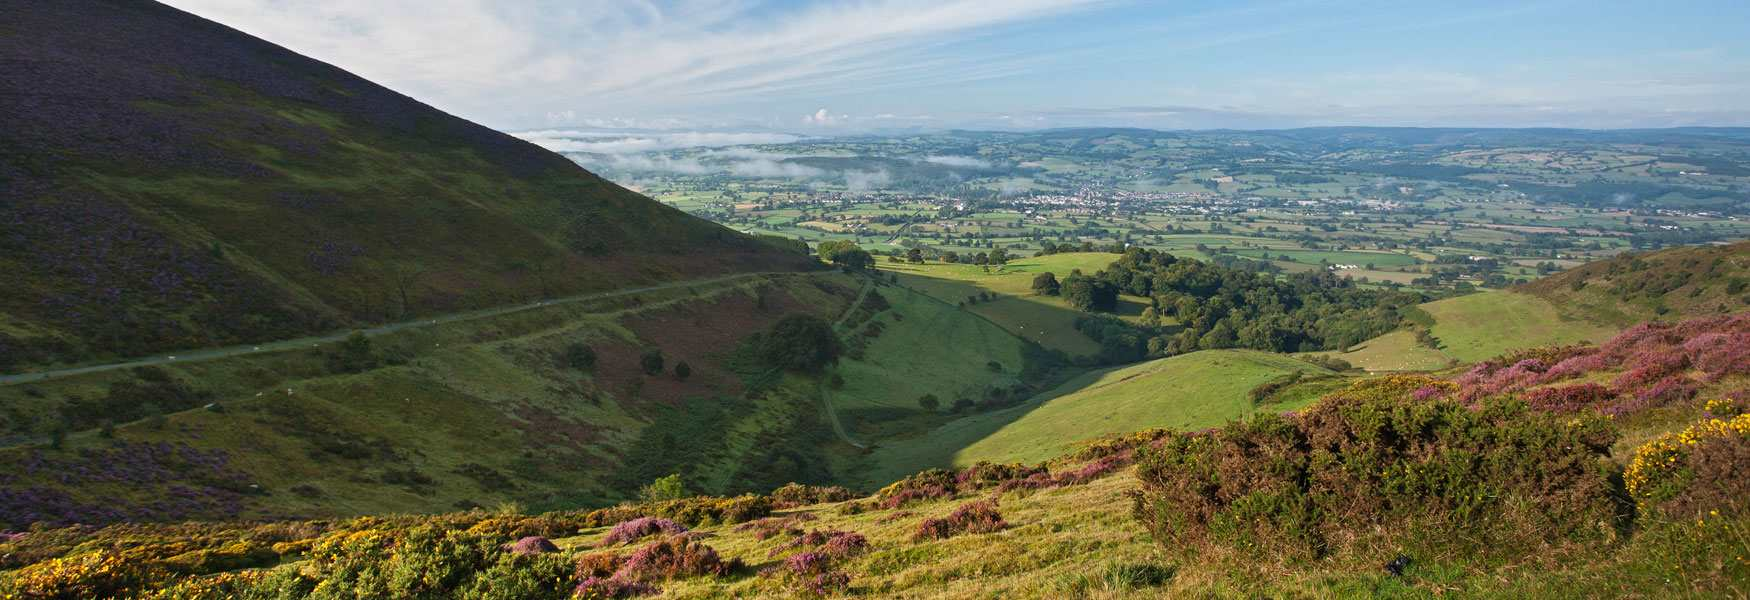 The Clwydian Range and Dee Valley